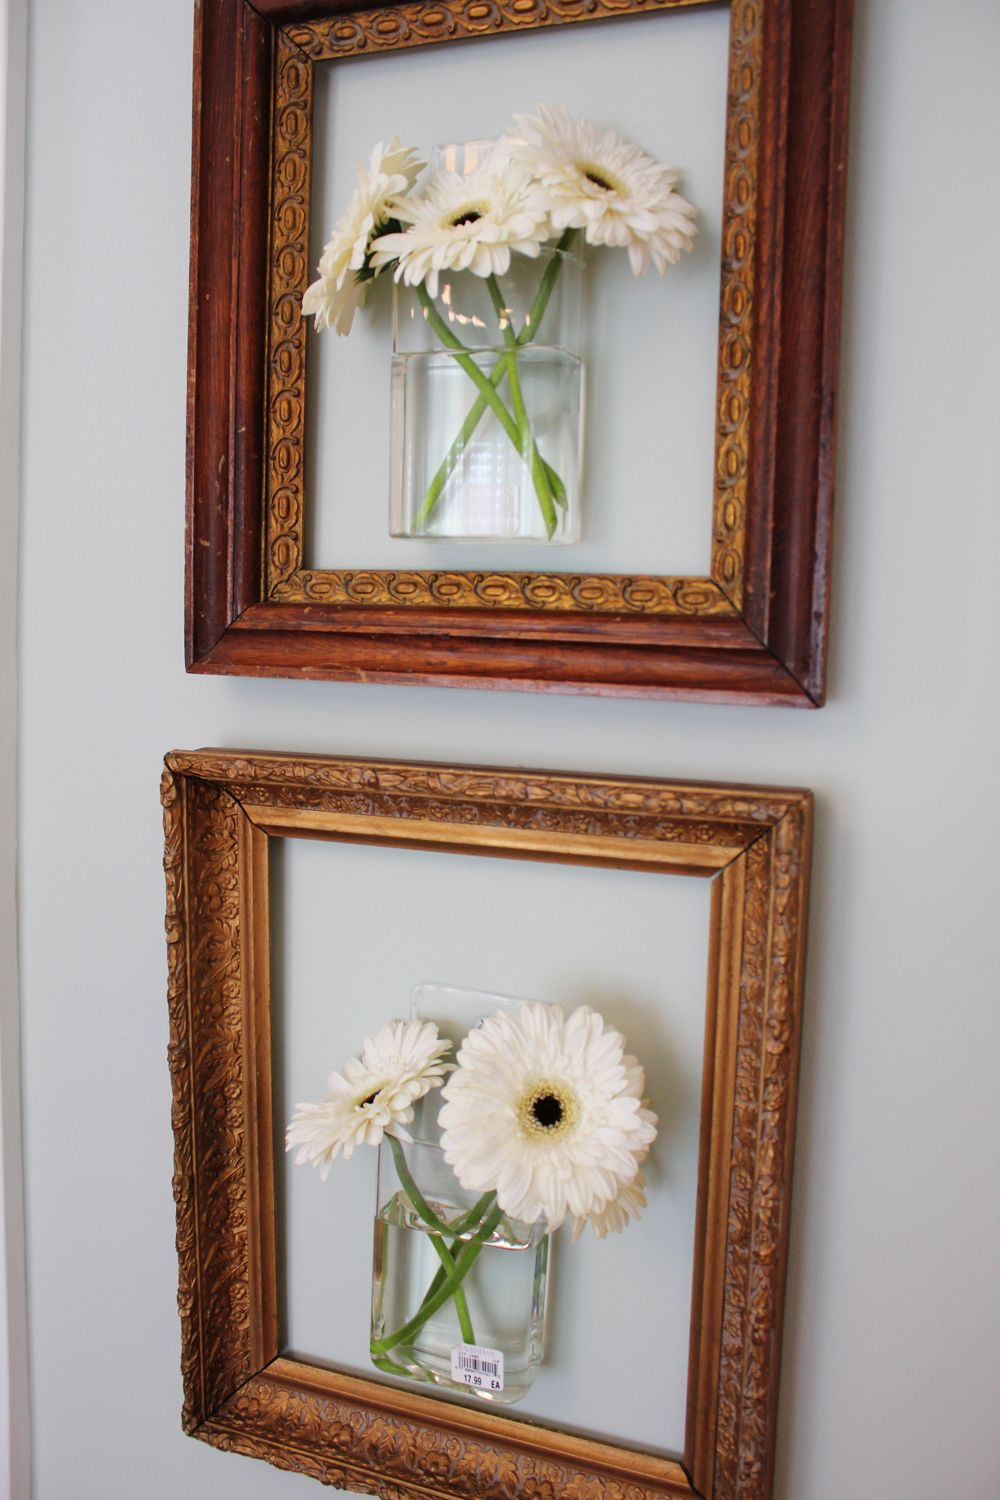 The Bachman S Summer Ideas House 2011 The Bedrooms And Media Room Empty Picture Frames Decor Home Decor